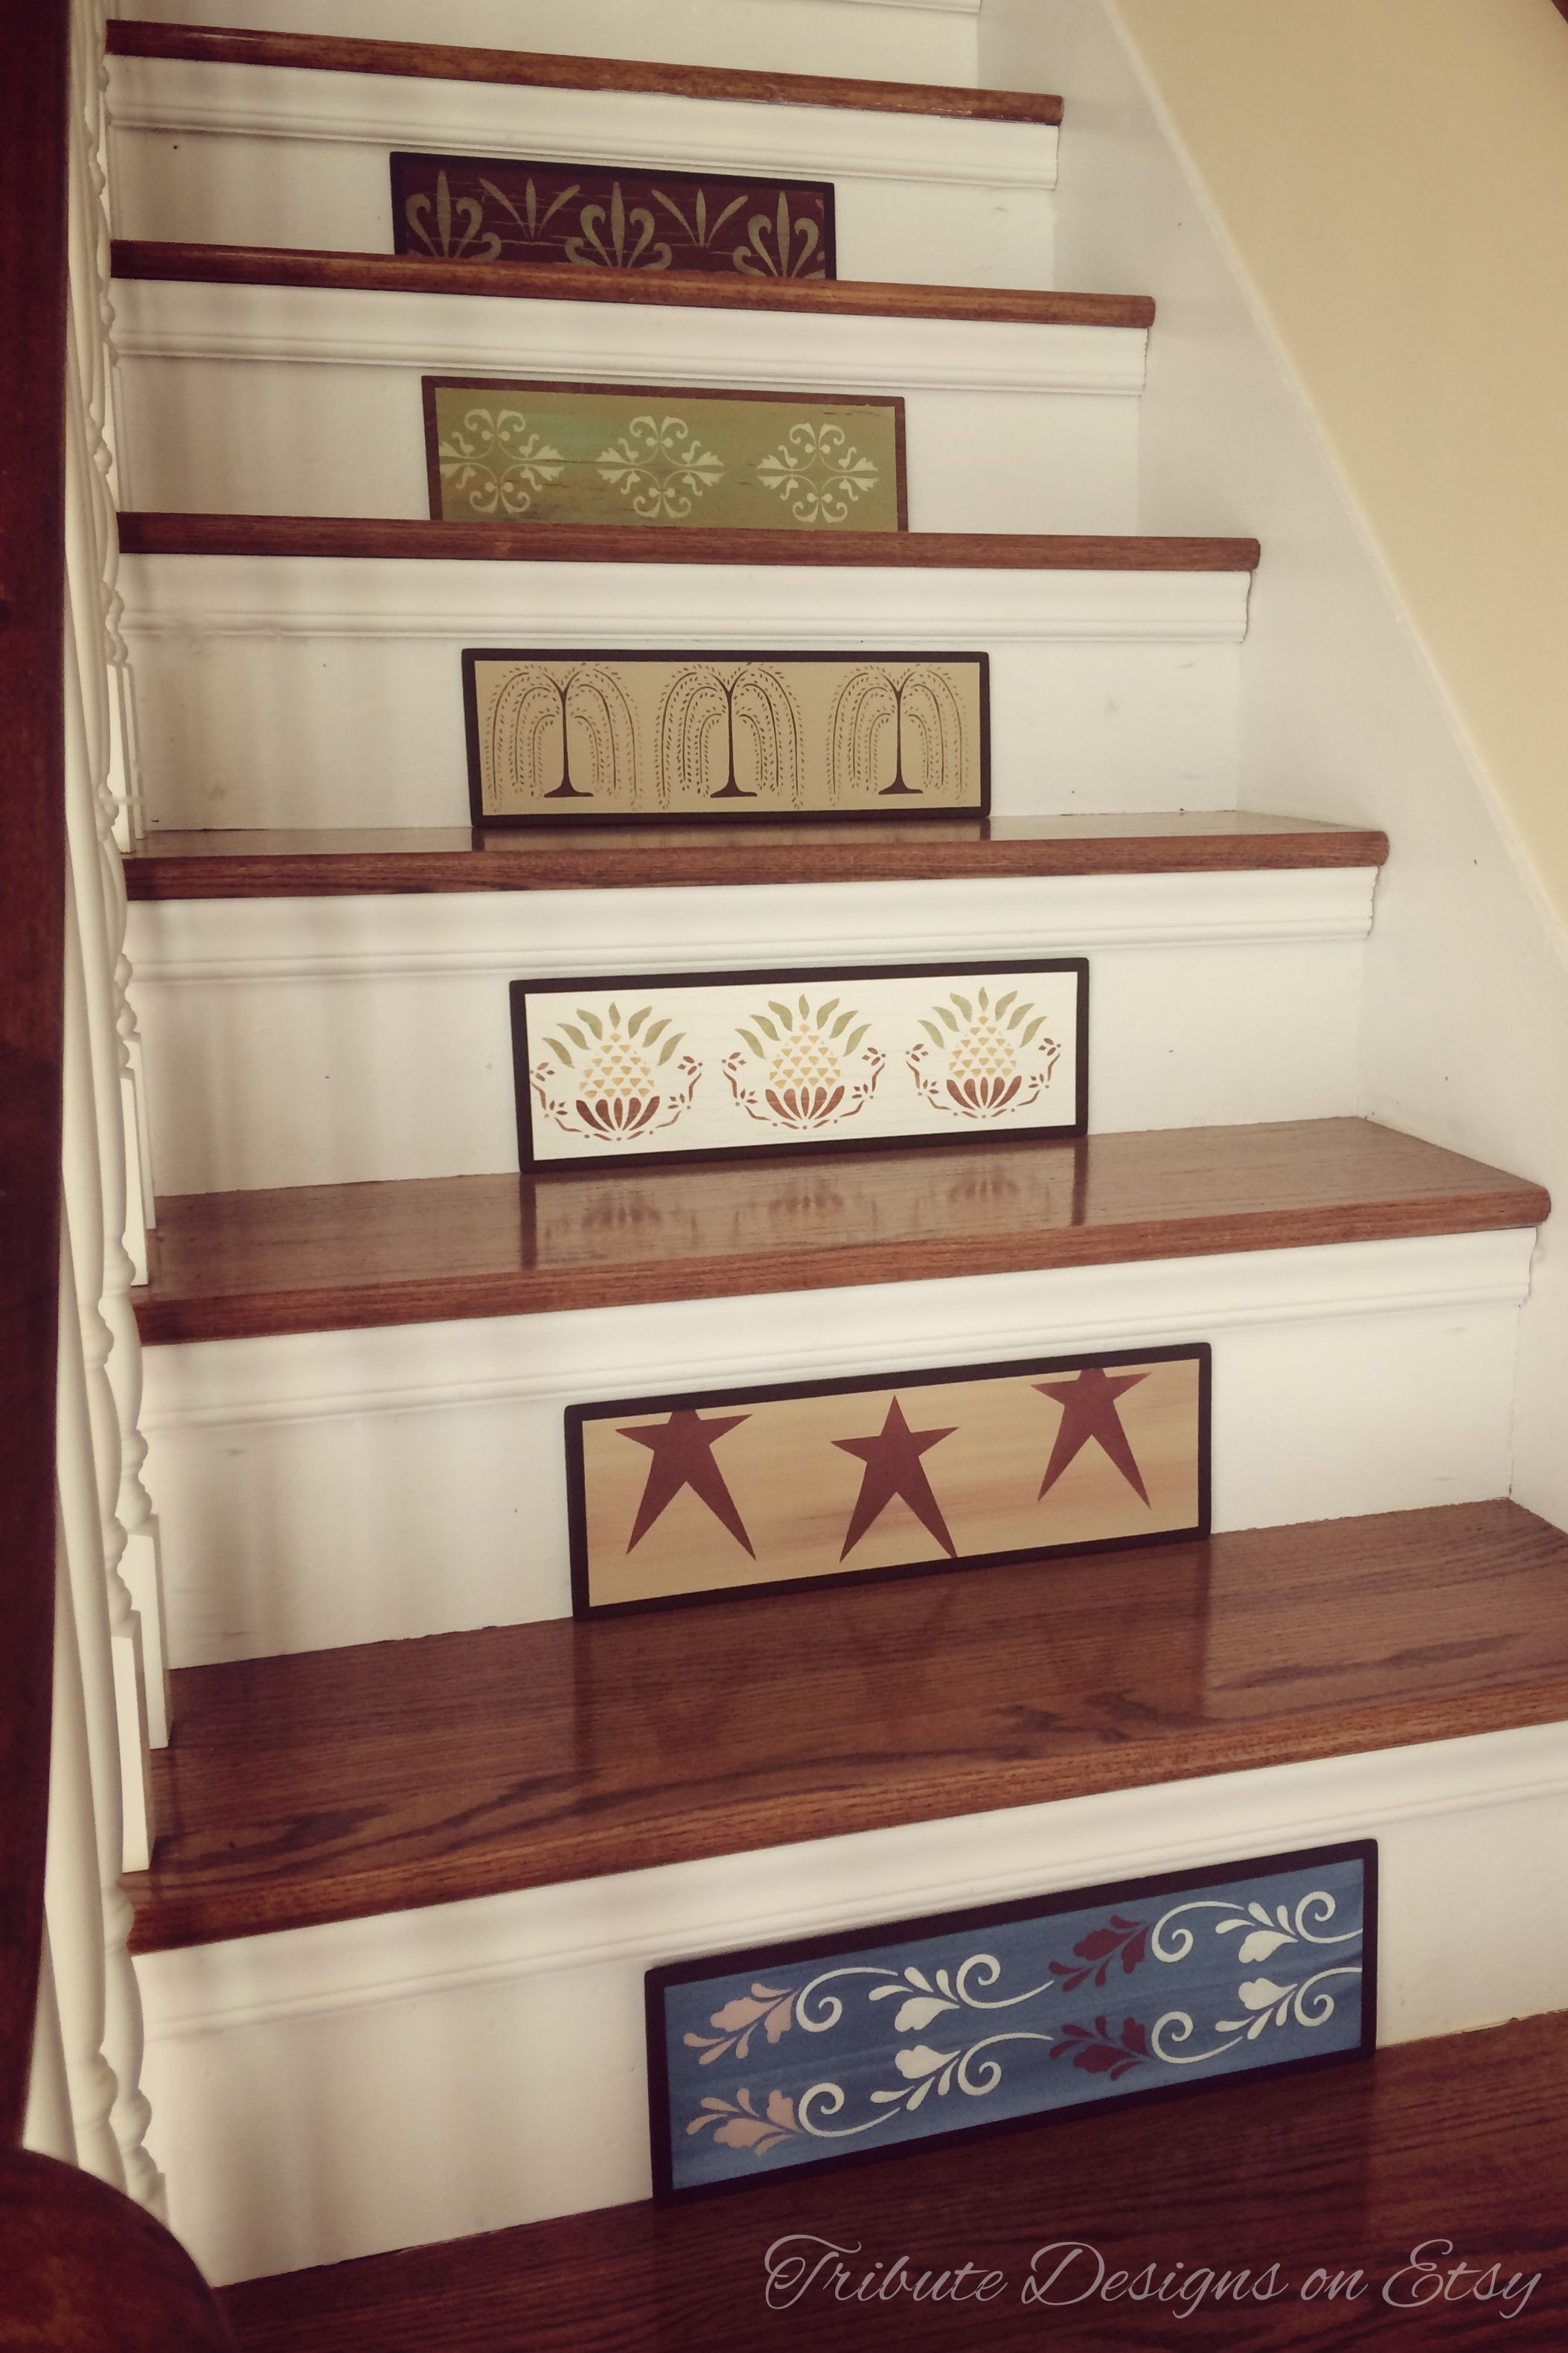 Primitive Decor Rustic Decor Stair Riser Staircase Stair Ideas Stair Makeover Www Tributedesigns Painted Stairs Primitive Decorating Stair Makeover